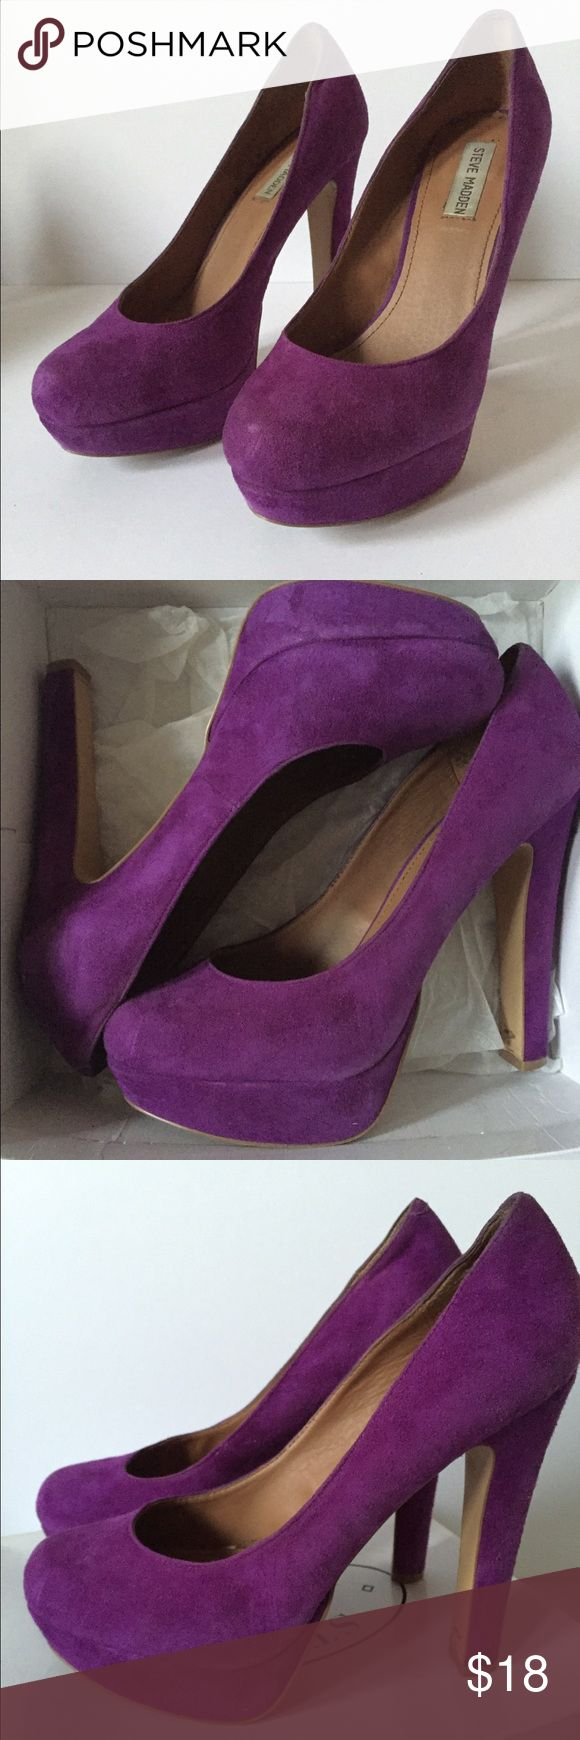 """Steve Madden Pumps: Beasst, Purple Suede Purple suede pumps from Steve Madden. 5.5"""" heel with platform and rounded toe. Super comfortable! They have been worn, but are still in good condition. Come with box. Steve Madden Shoes Heels"""